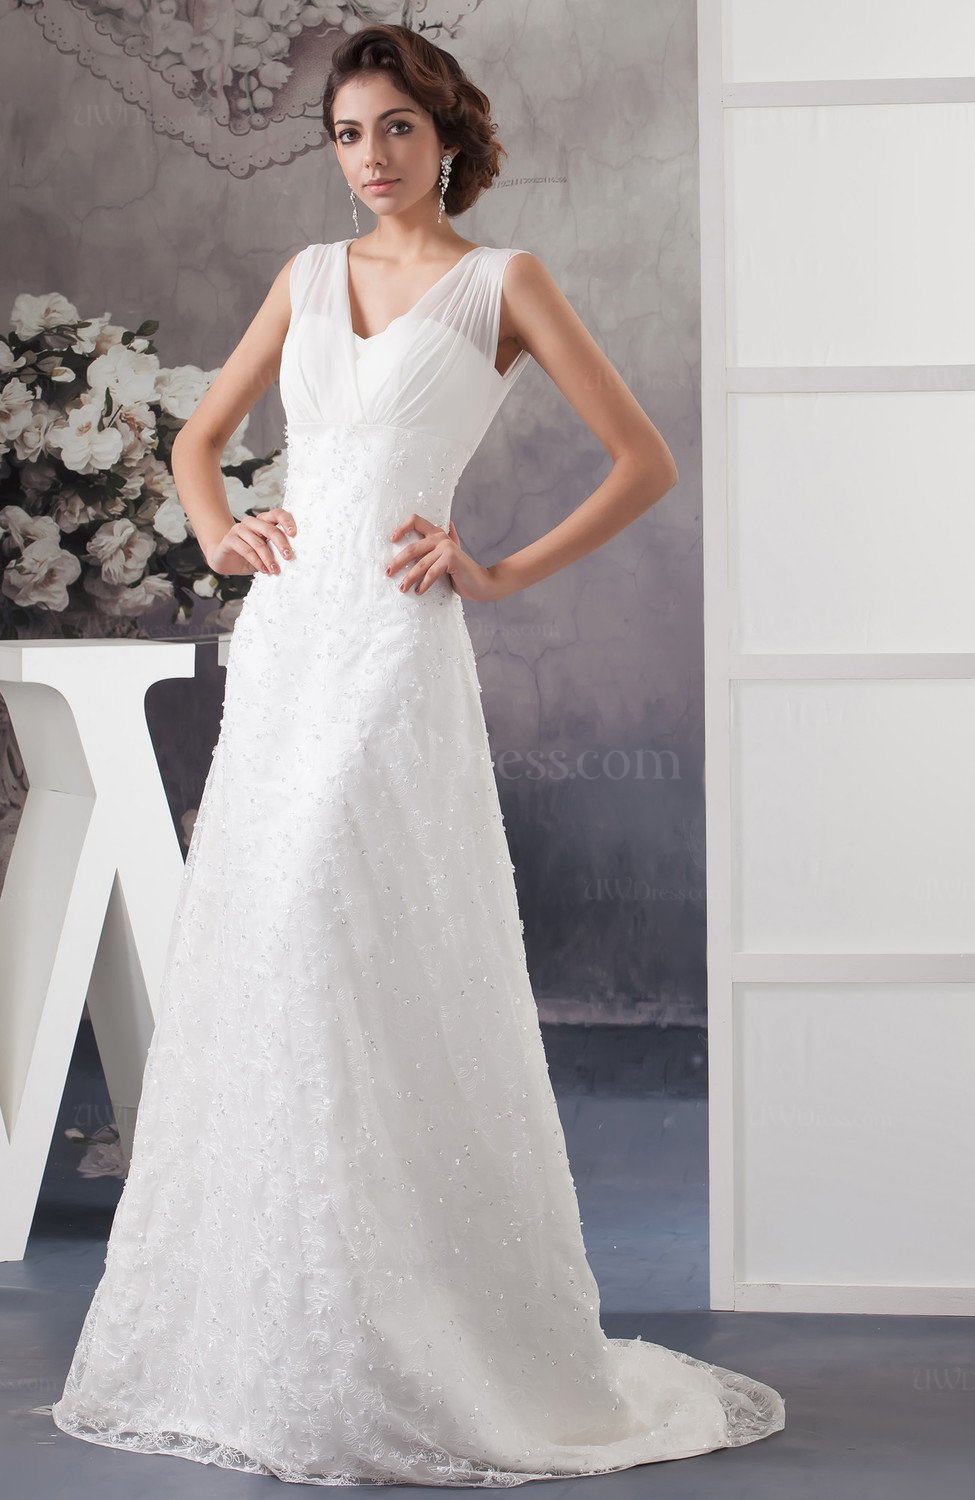 Lace bridal gowns allure disney princess illusion plus for Princess plus size wedding dresses